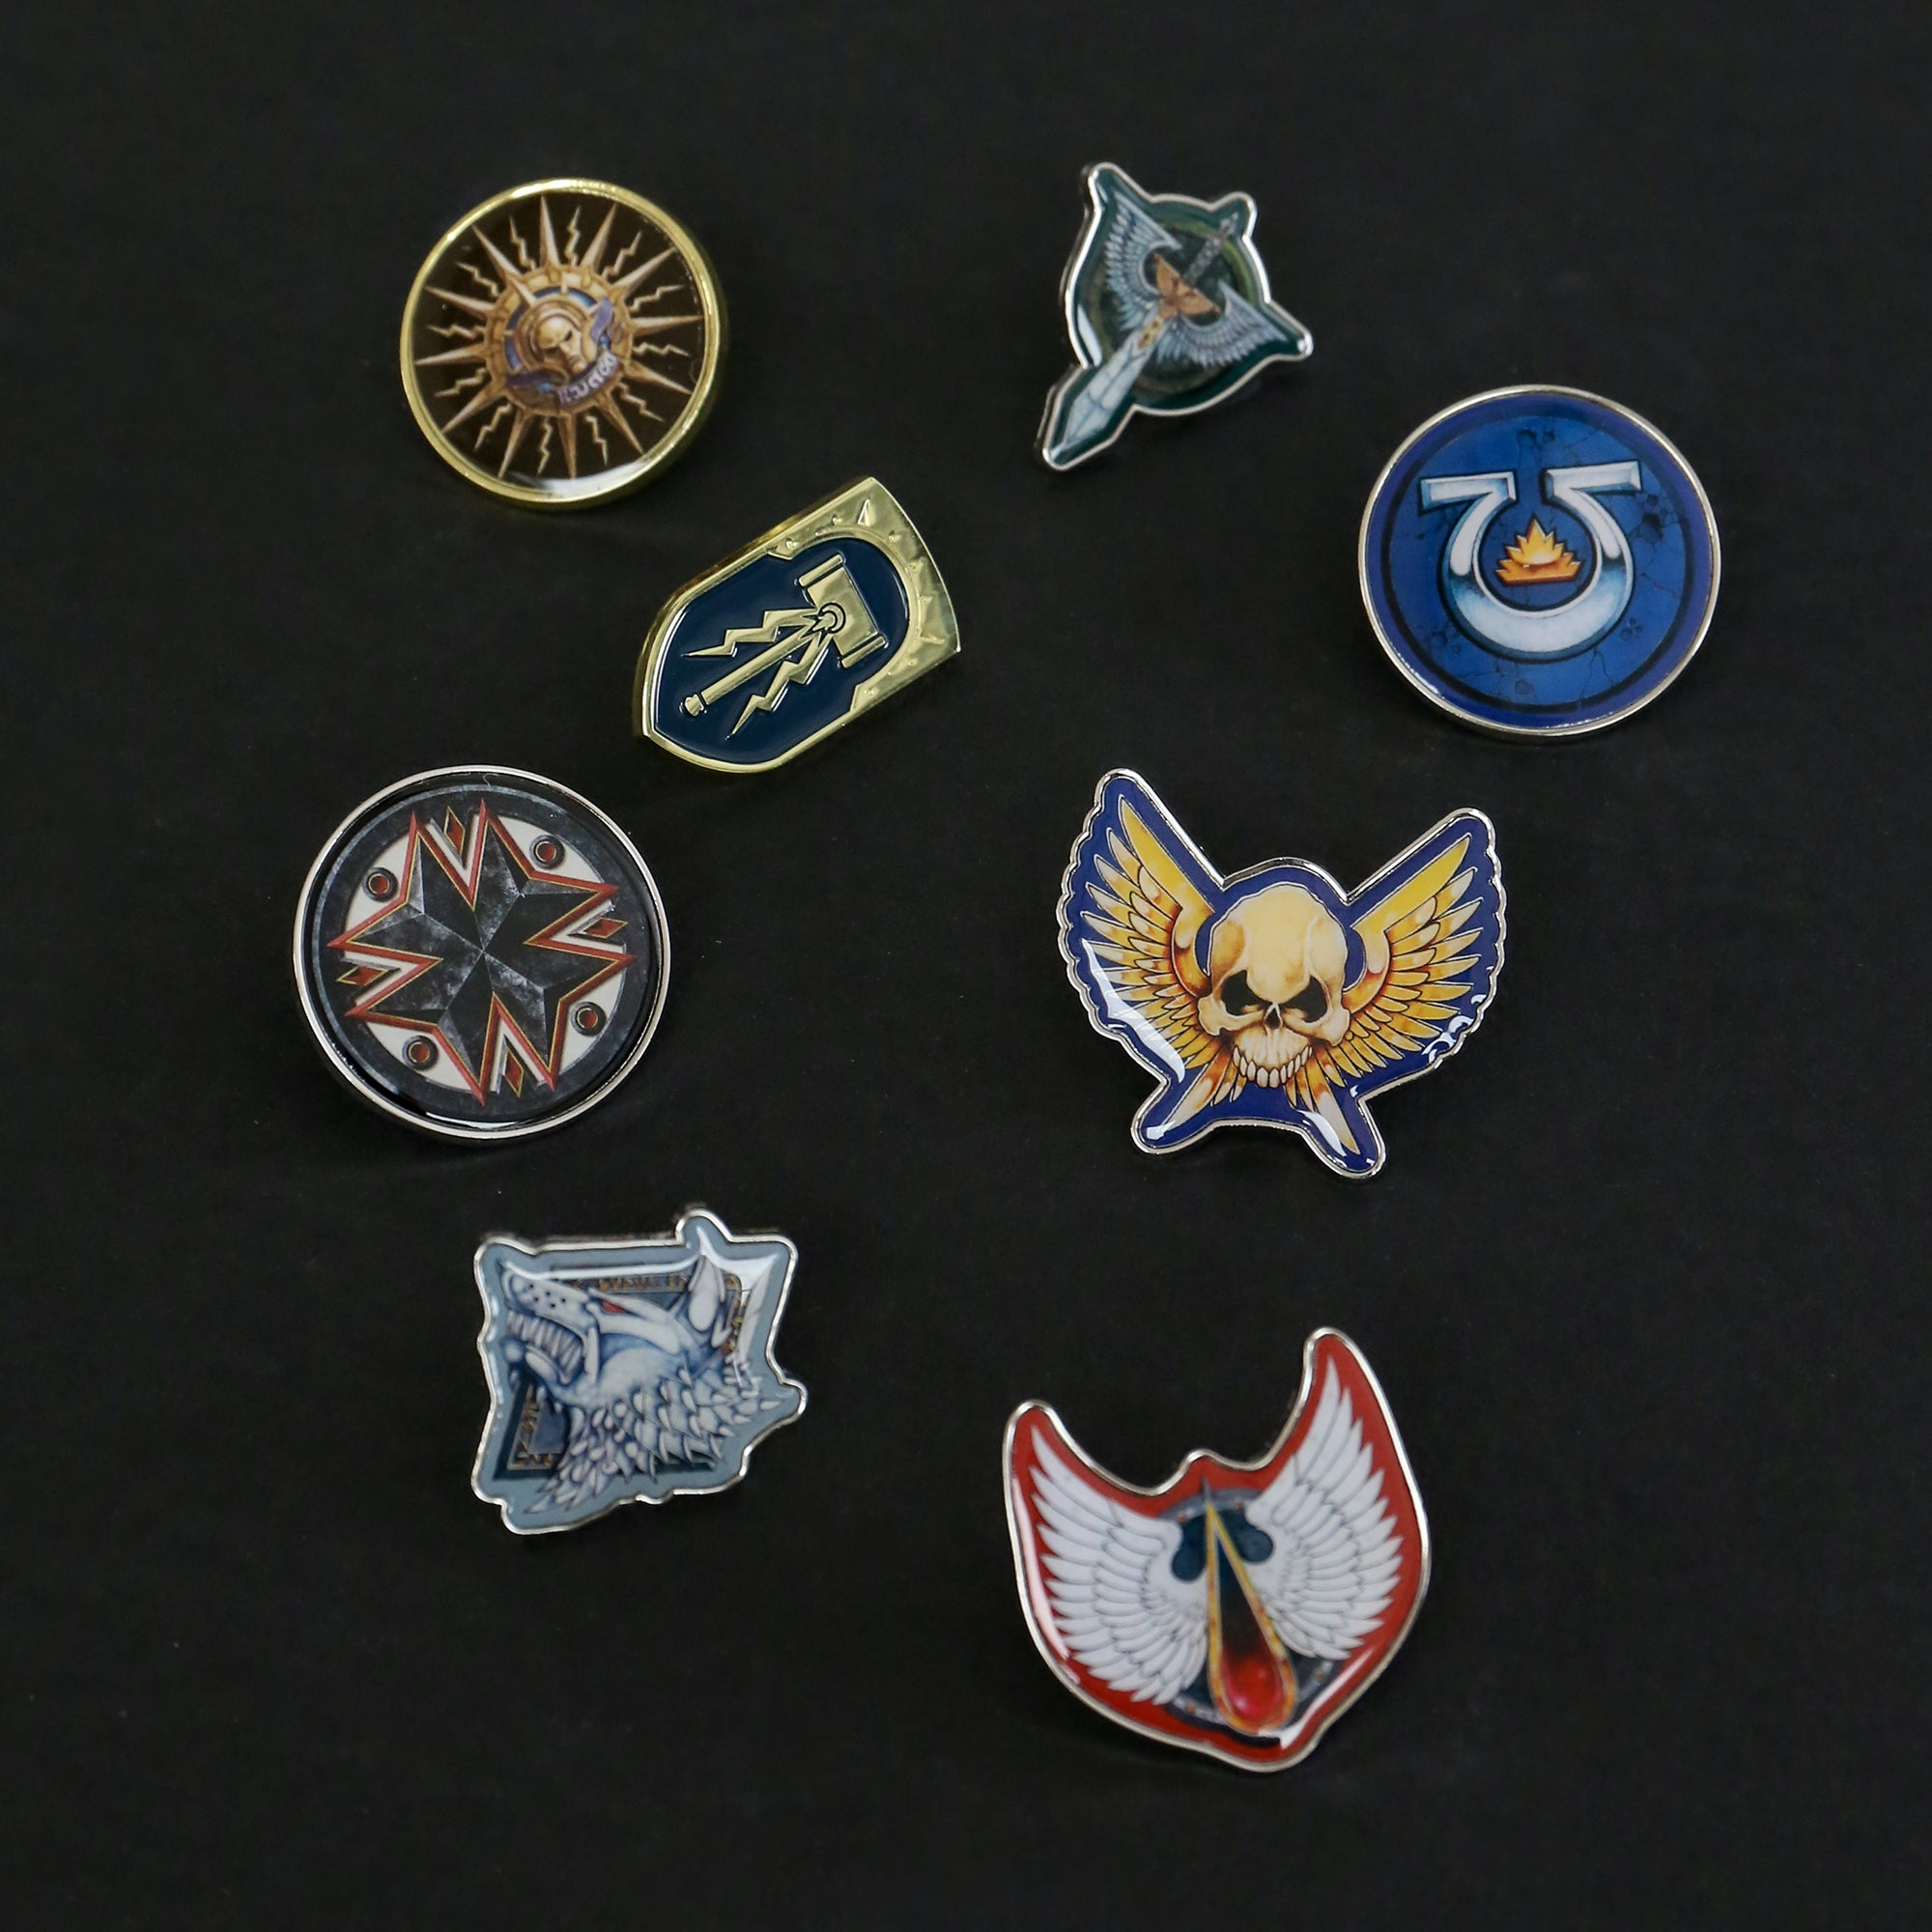 Warhammer Ultimate Pin Badge Bundle